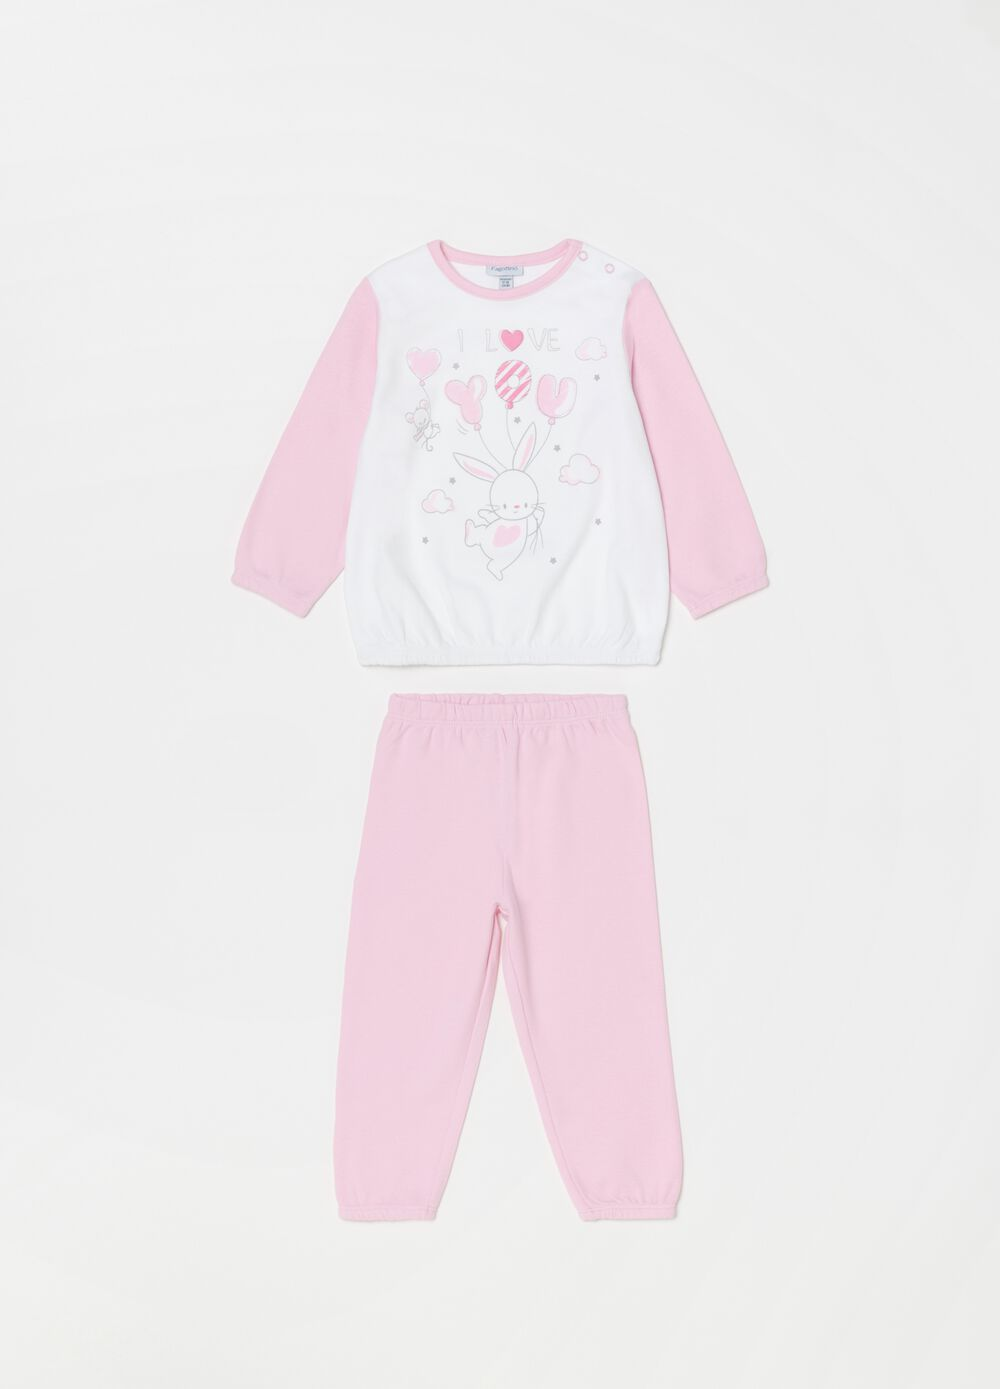 100% organic cotton pyjamas with print